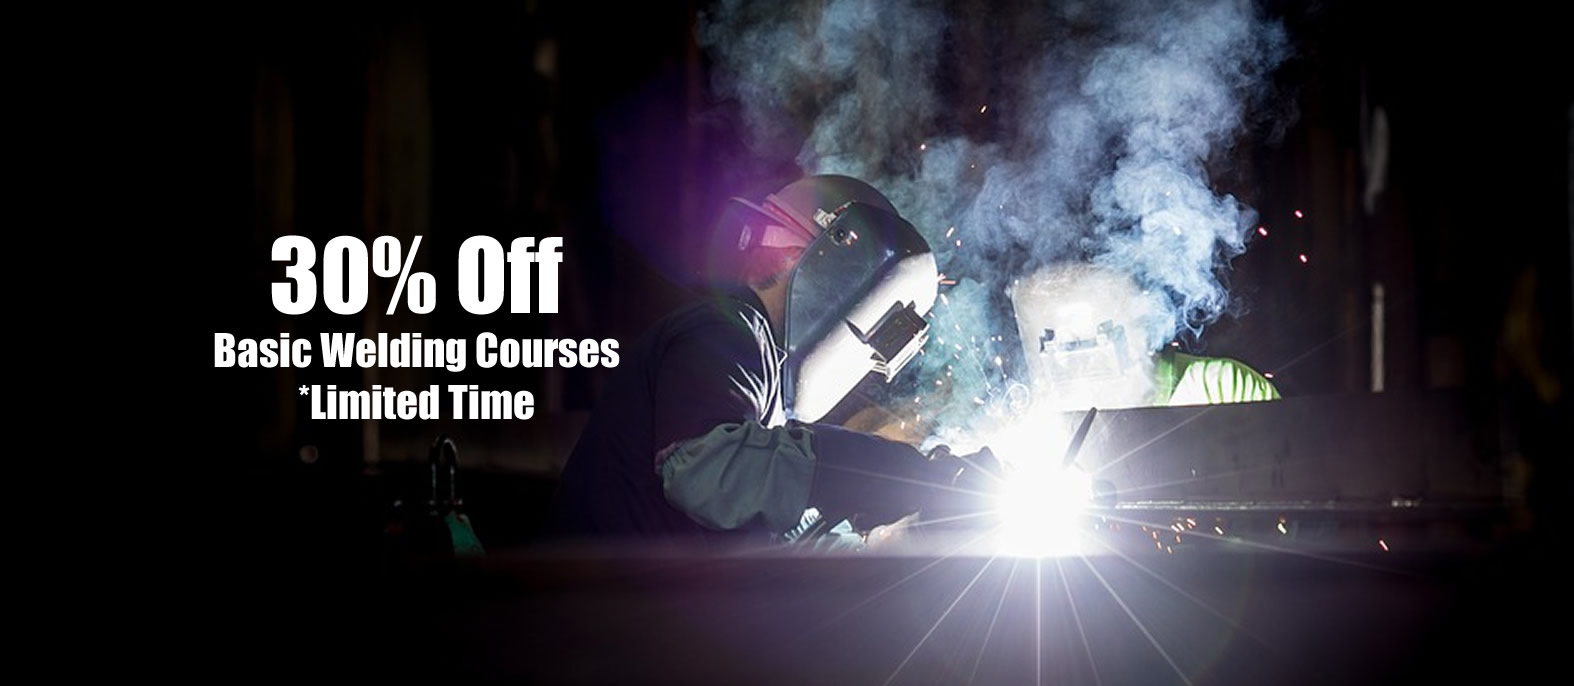 Welding Course Discount